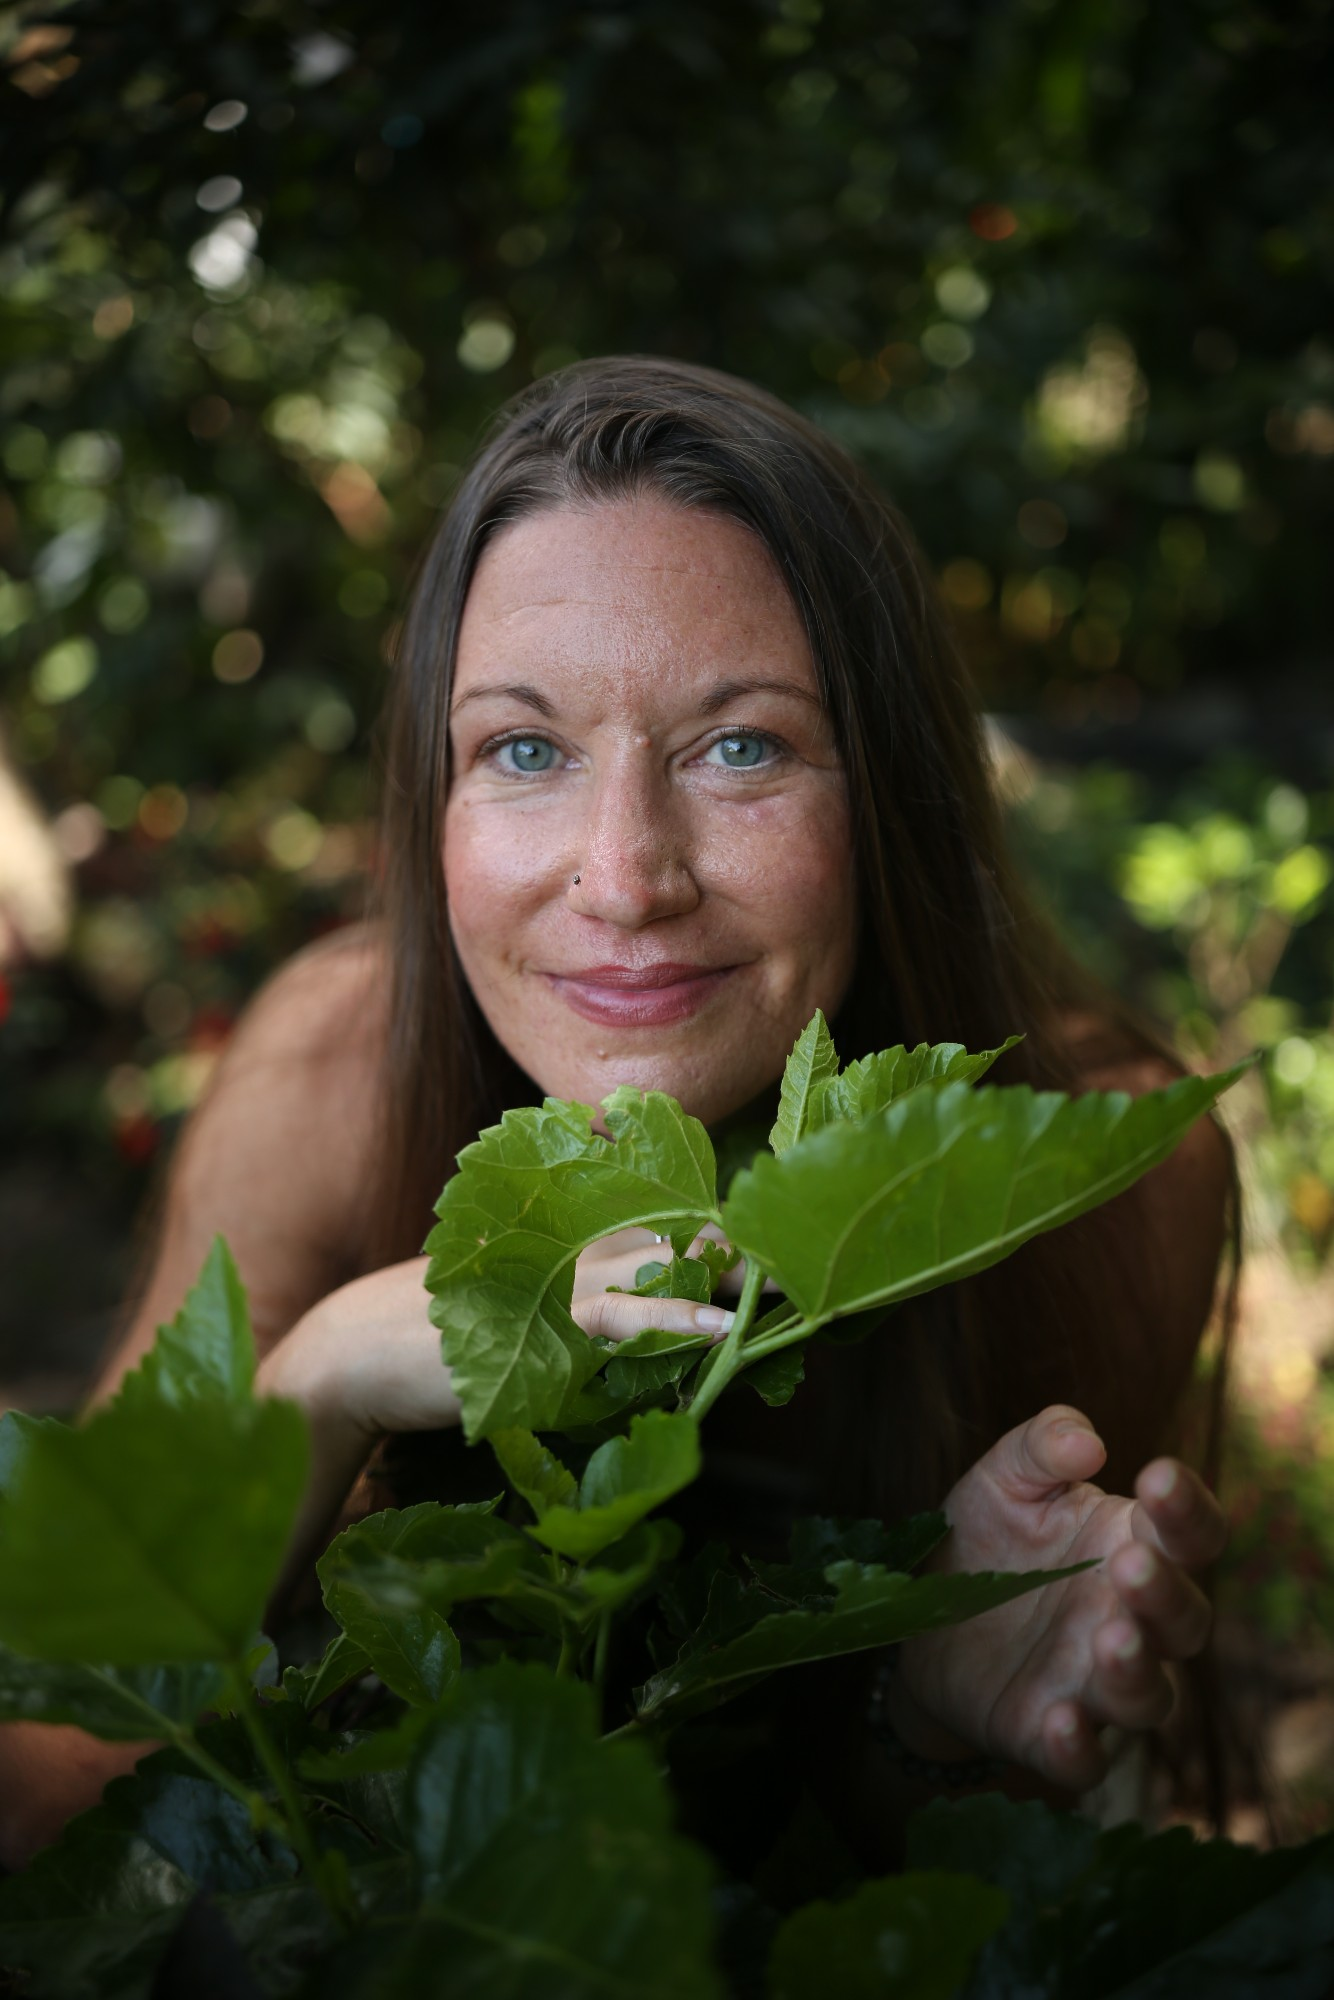 Kristine Vanderplas, lead facilitator of the Sacred Earth Yoga Teacher Training + Permaculture Immersion, a 200-hour Yoga Alliance certified ytt at Lake Atitlan, Guatemala this October 26 - November 23, 2019